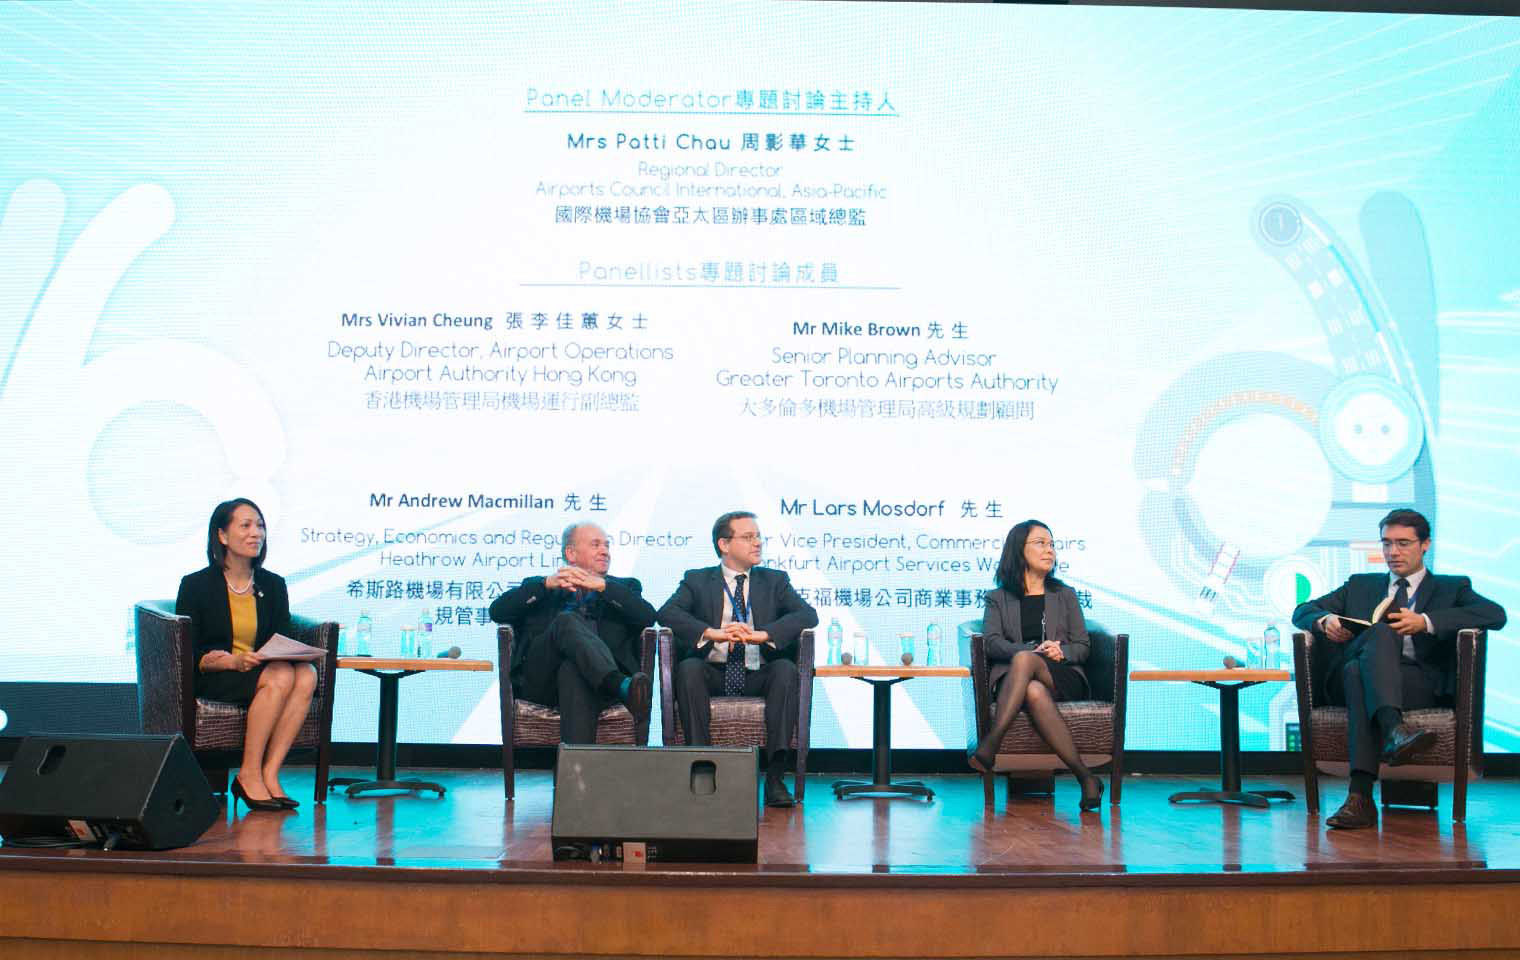 Panel Discussion<br>